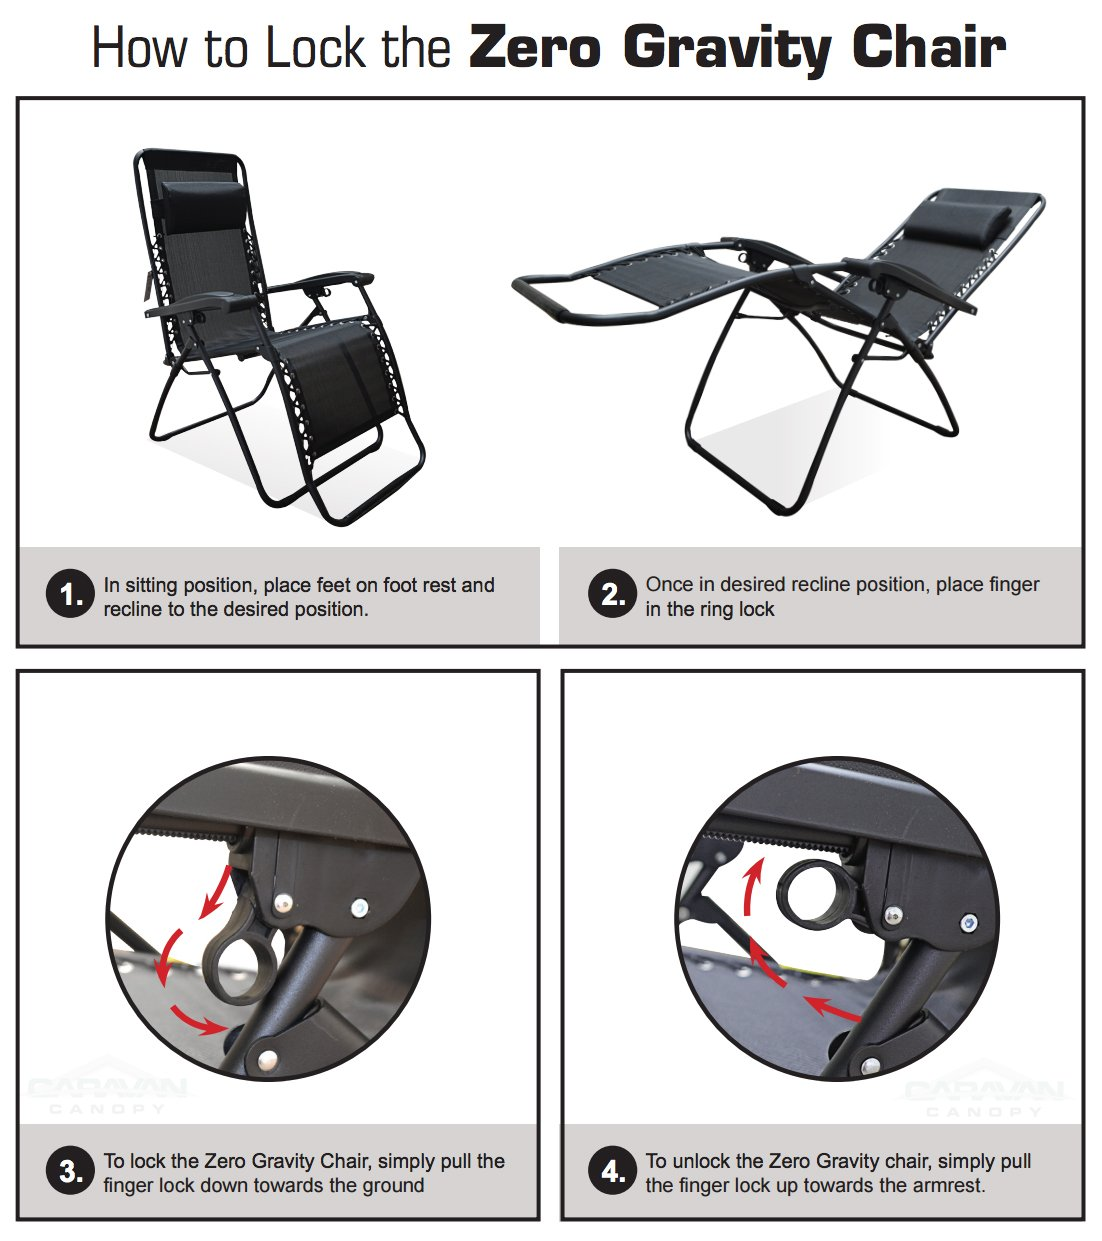 black lounge orbital patio with folding a as infinity is holder chair wcup outdoor effective gravity recliner an pc zero chairs